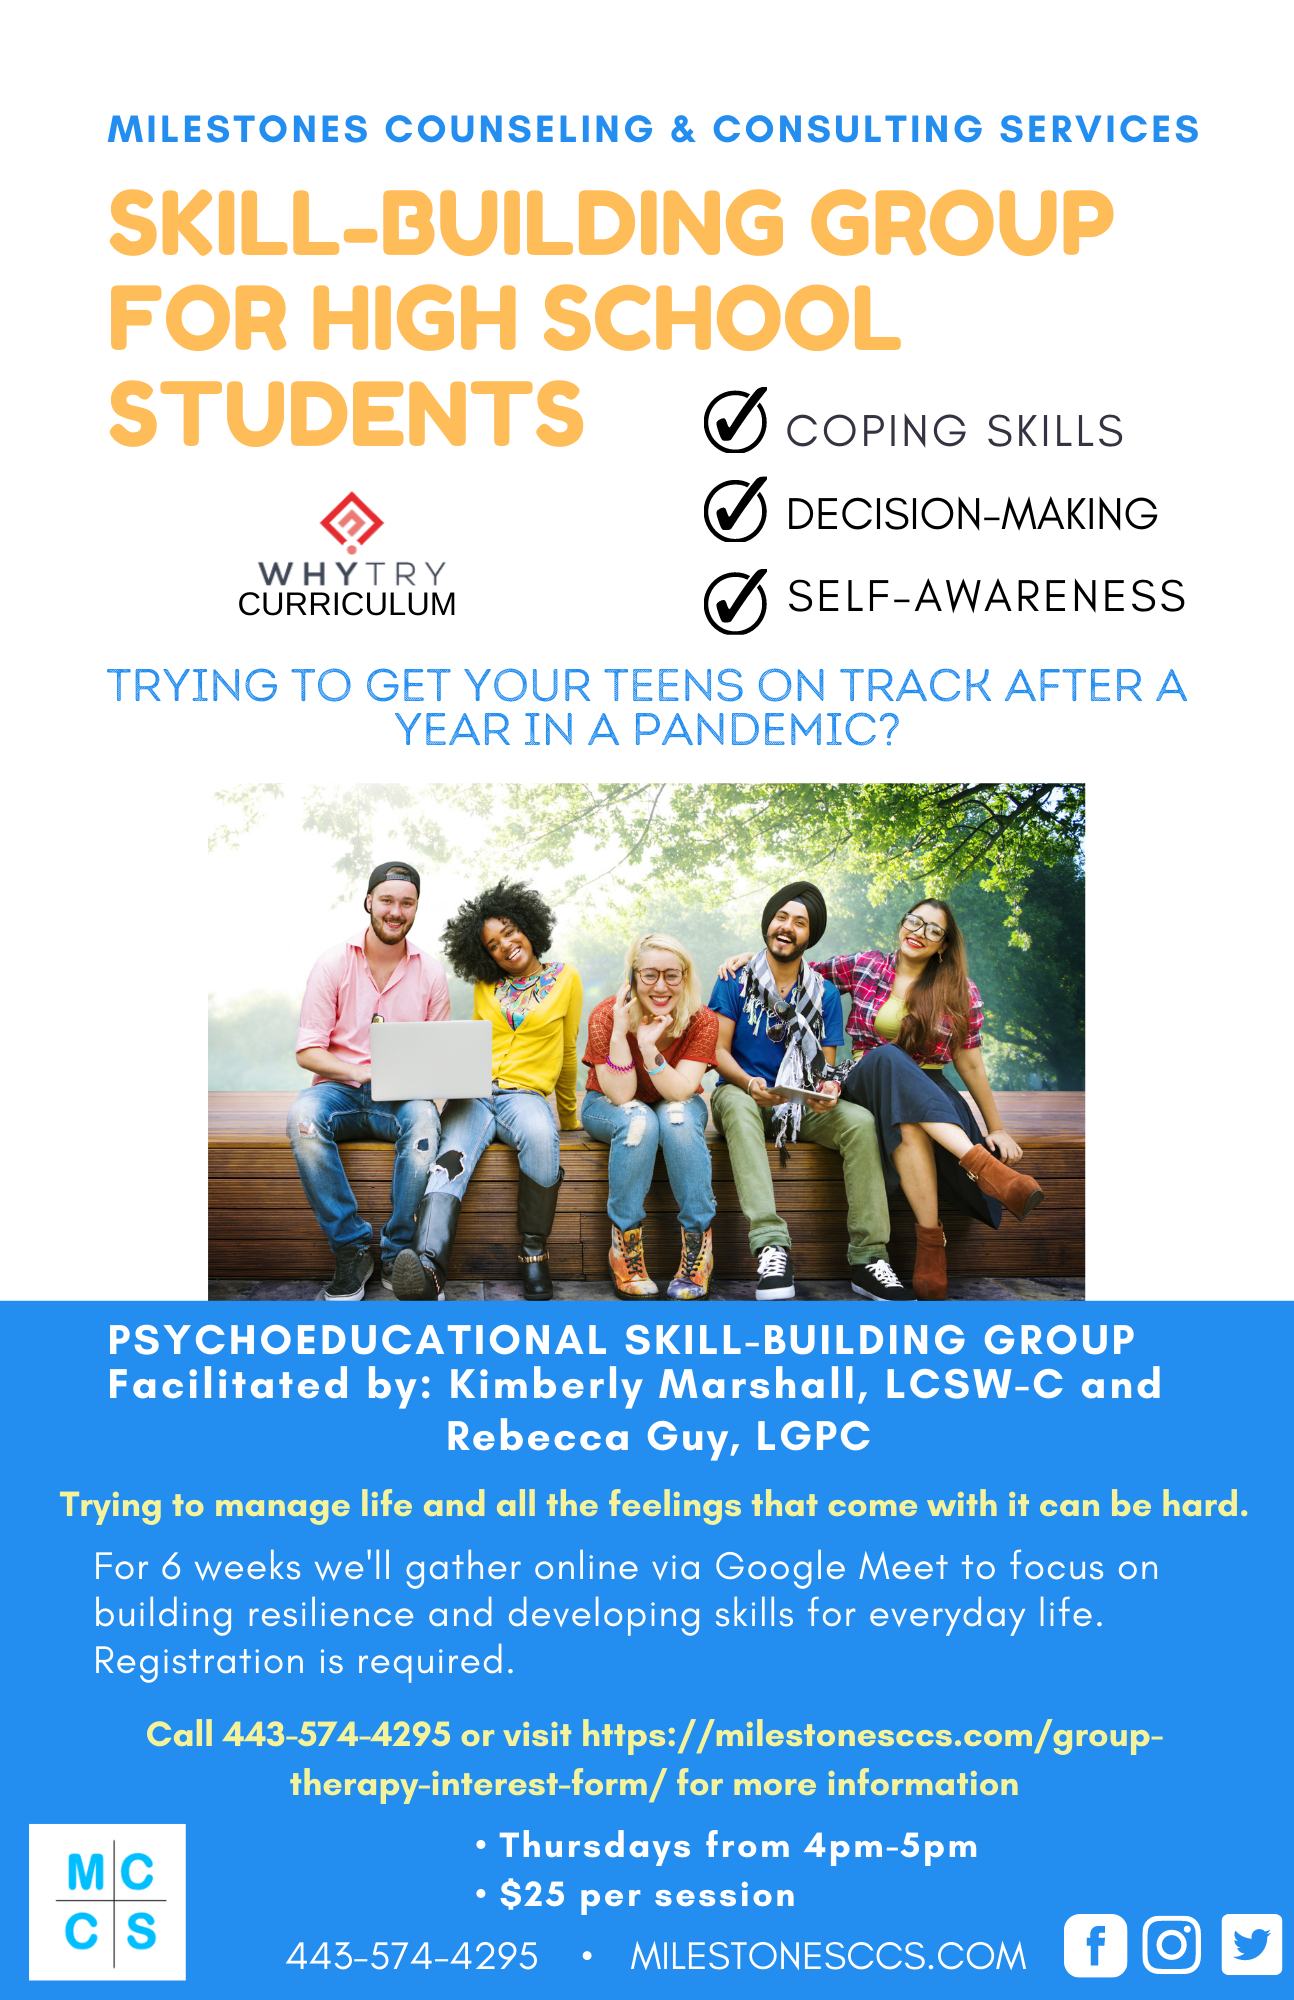 SKILL-BUILDING GROUP FOR HIGH SCHOOL STUDENTS